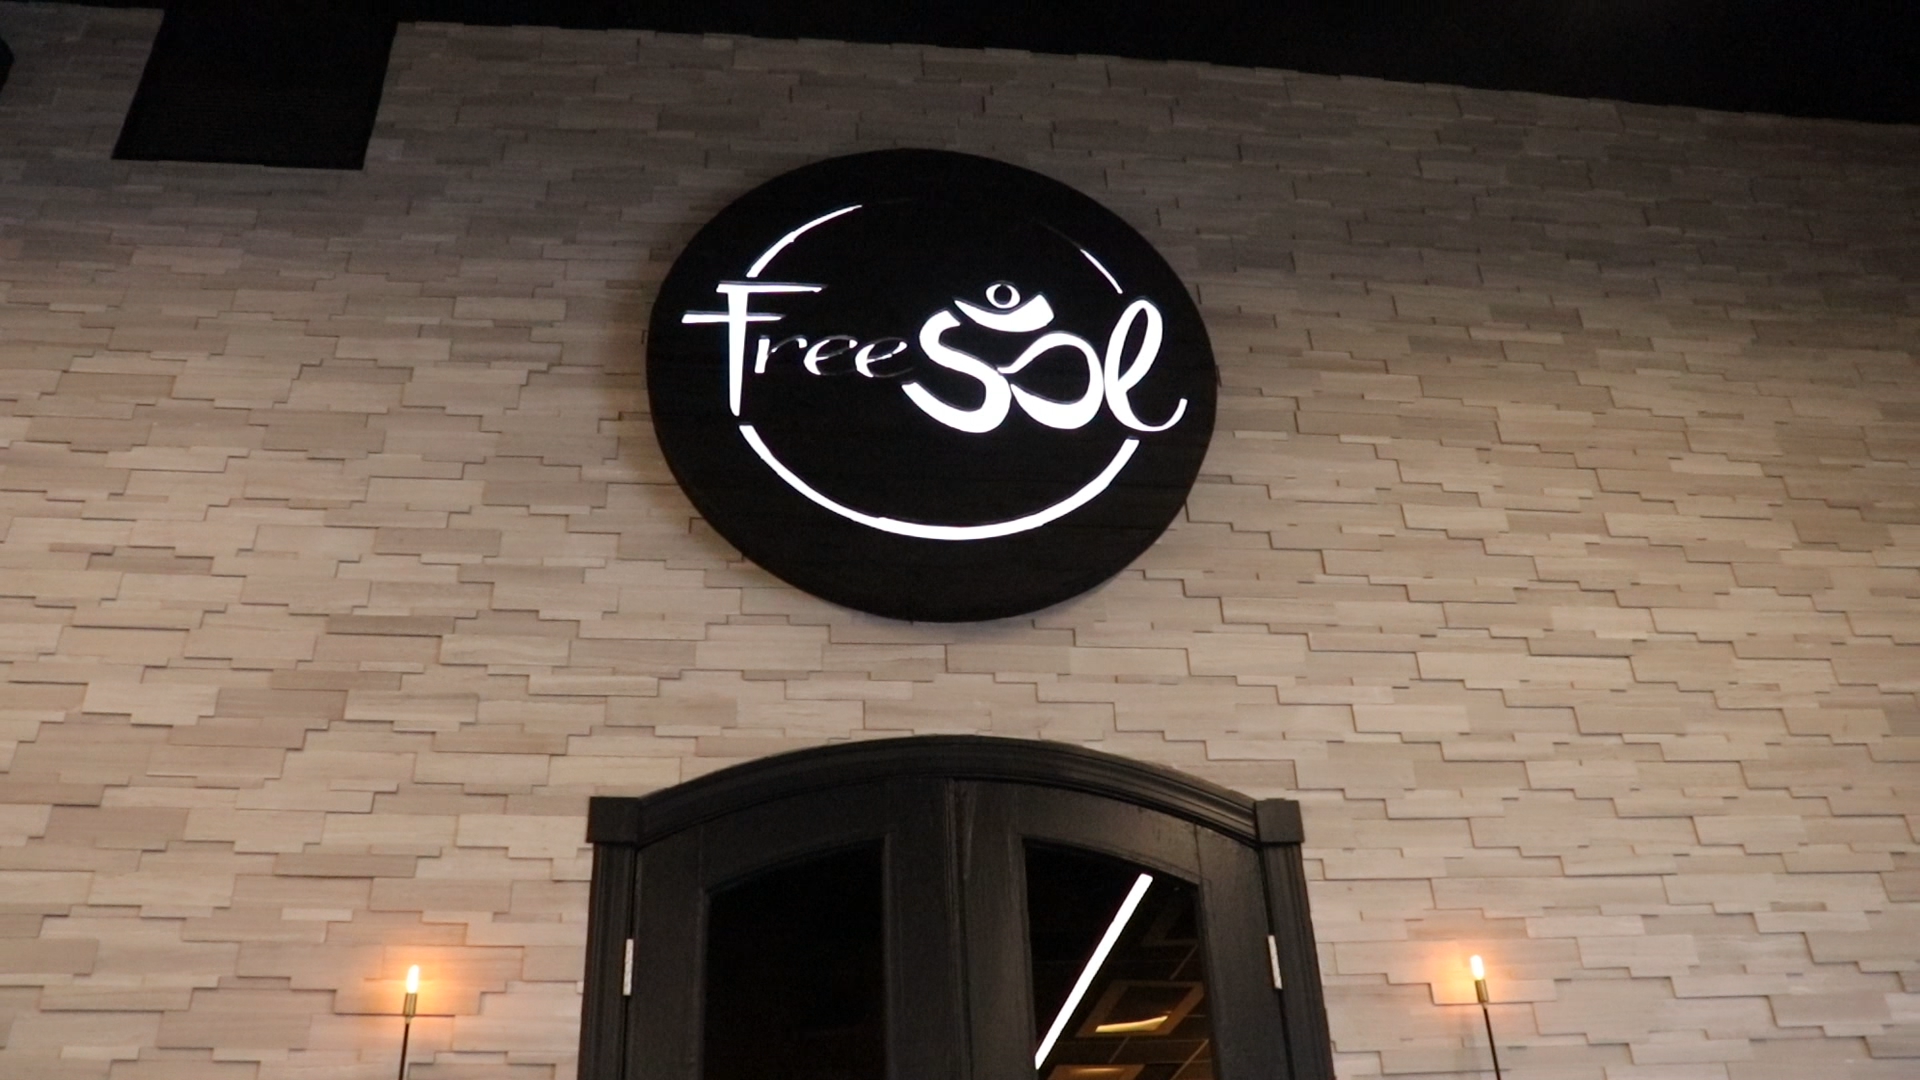 Torched wood, interior-lit, large circular wall sign for FreeSol, a fitness studio located in Styles Studios, a boutique fitness studio in Peoria, IL.